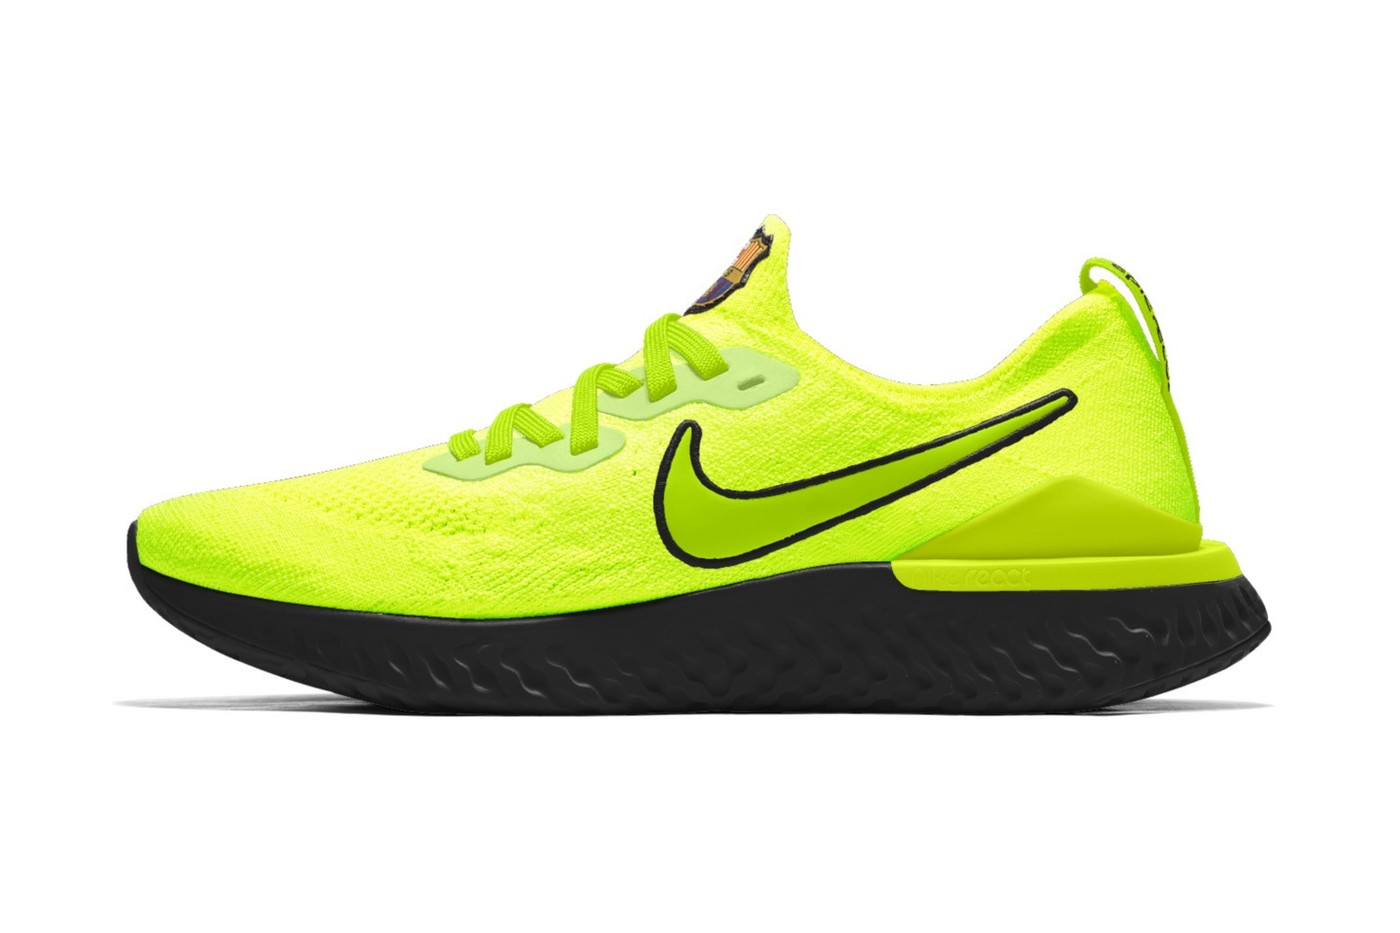 f6b134f63590 Nike Drop New Customisable Epic React Flyknit 2 Models for Barca ...